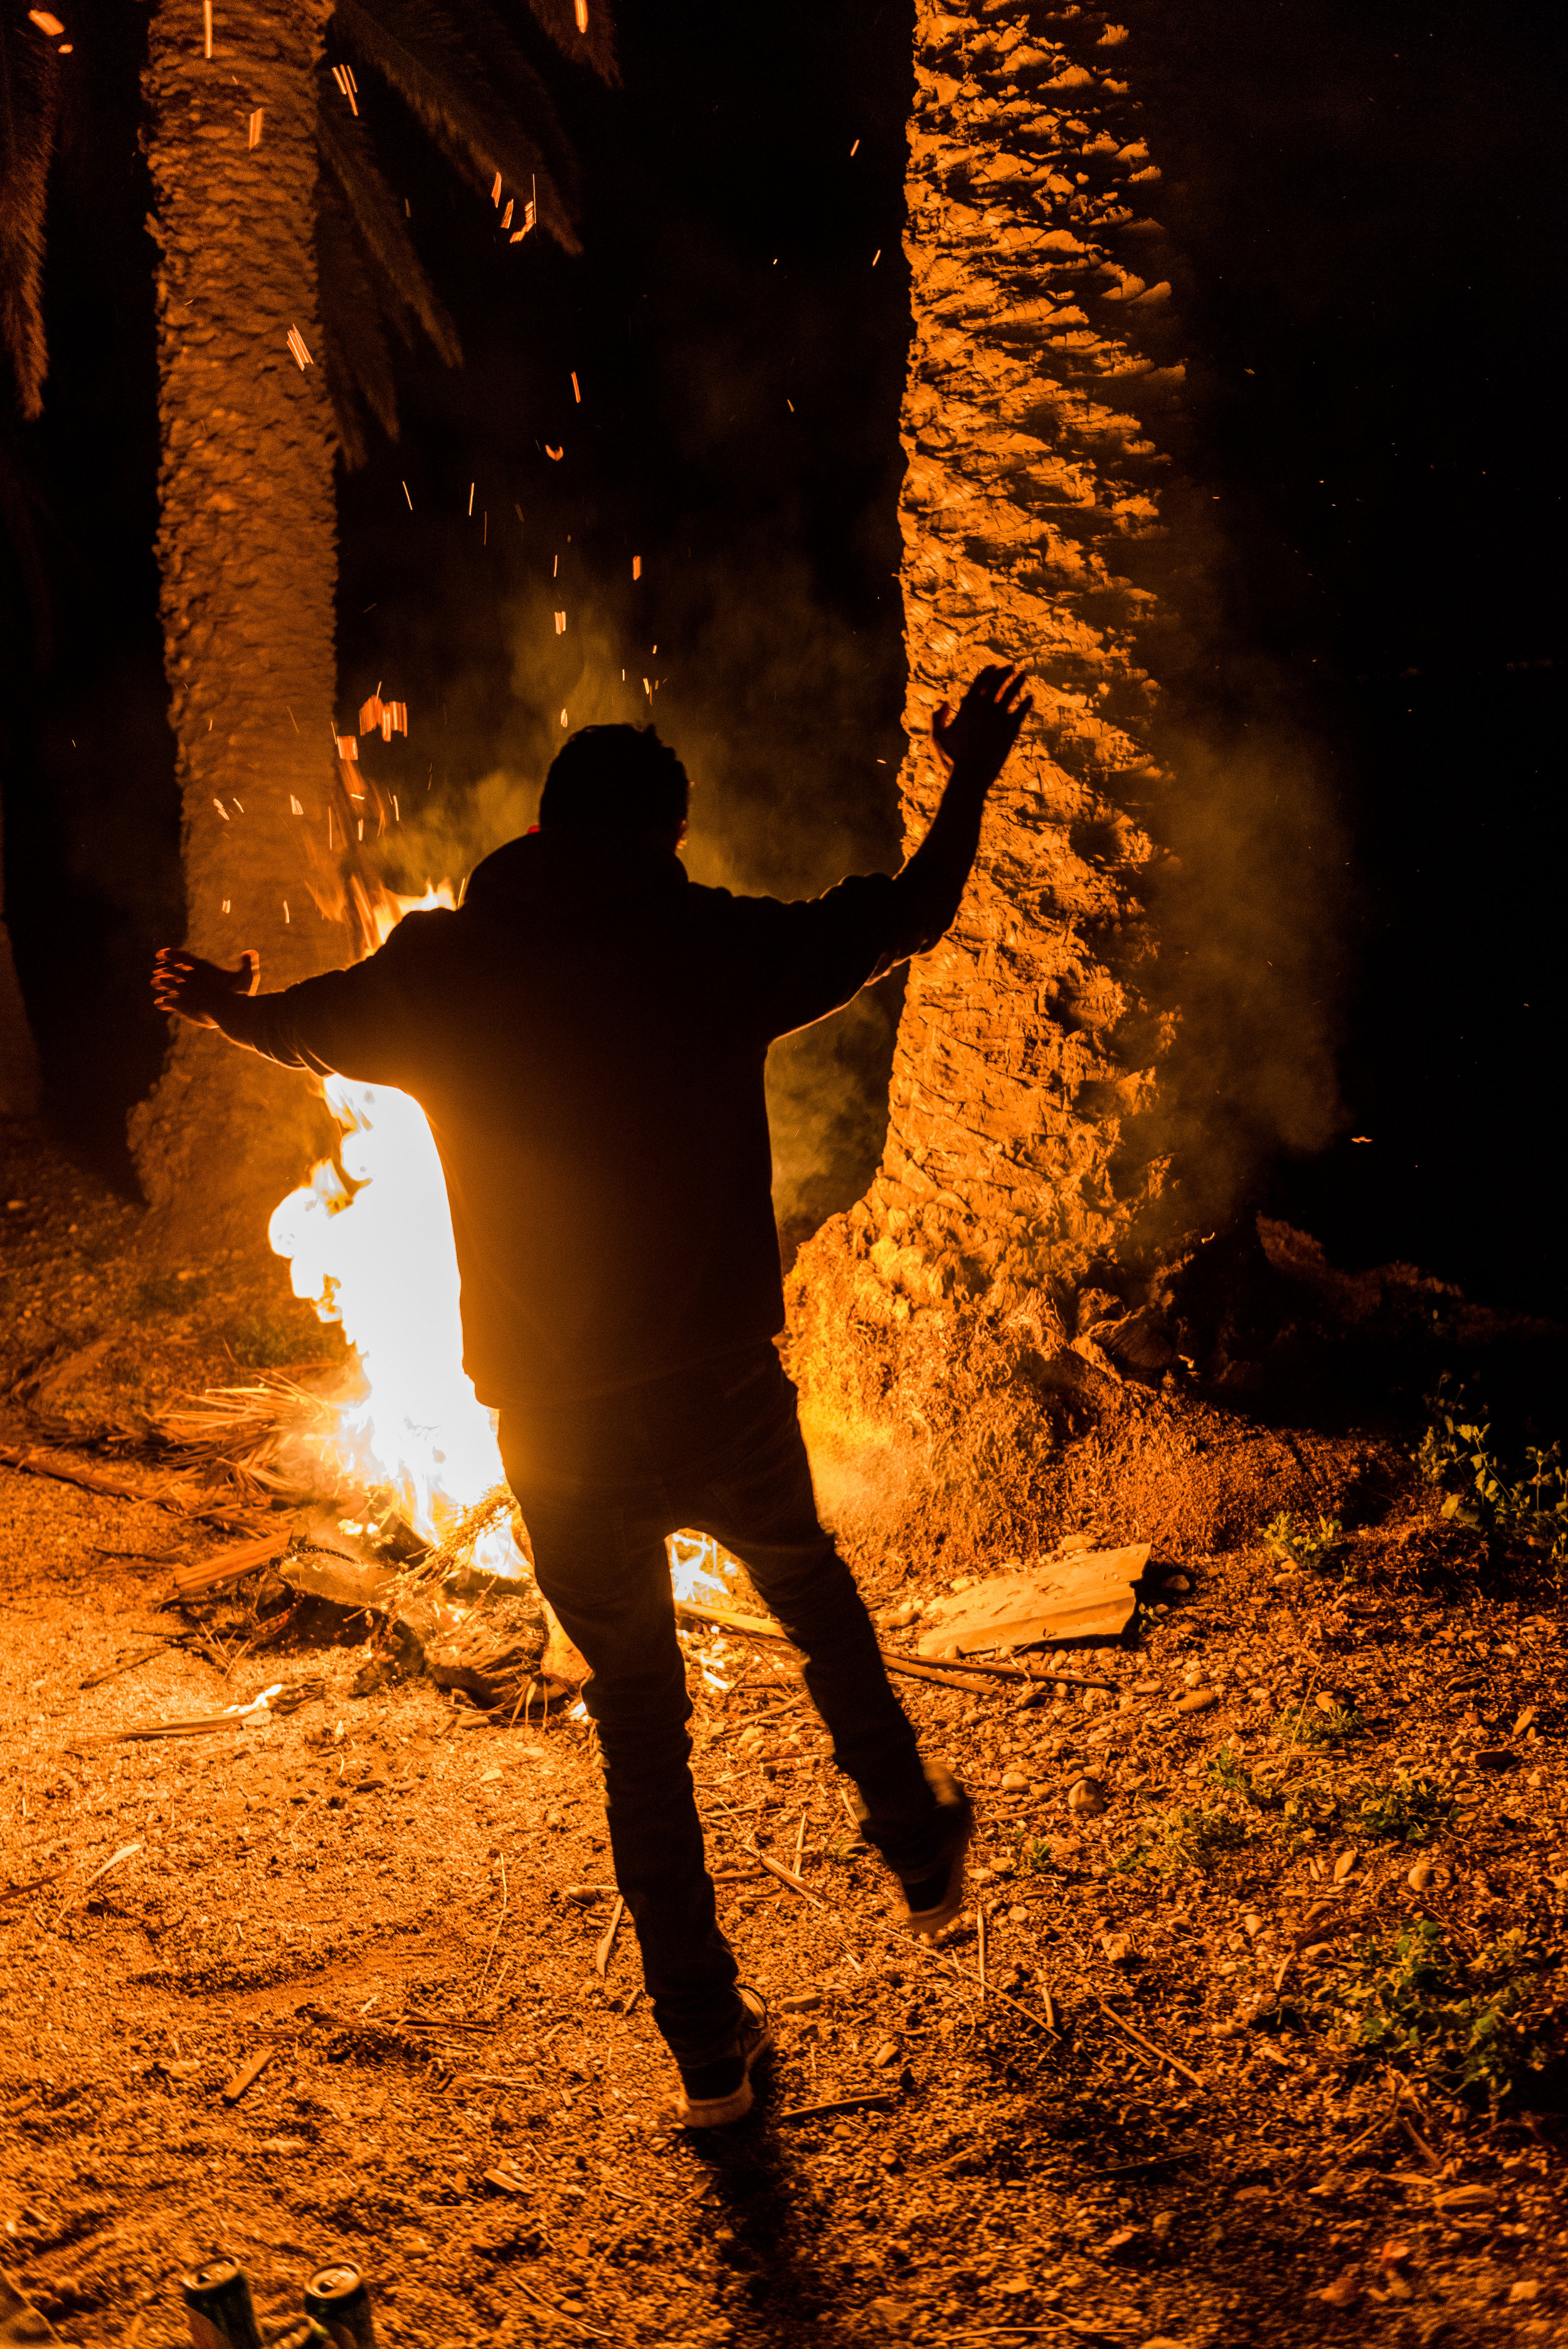 Aziz dances to the music in front of the roaring palm tree branch fire.